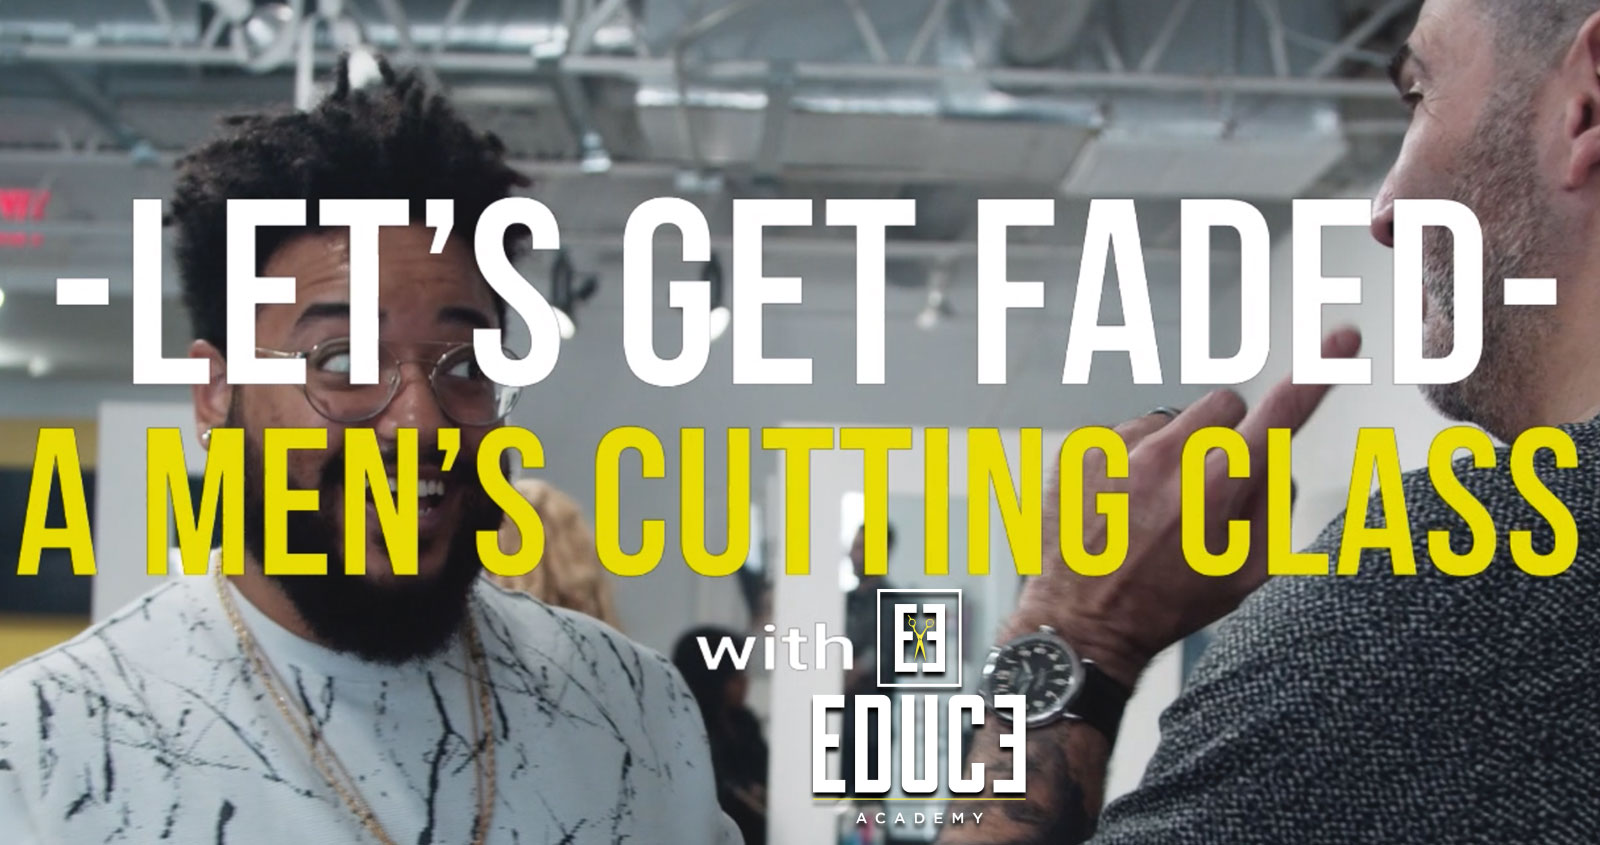 Let's Get Faded - Educe Salon Academy